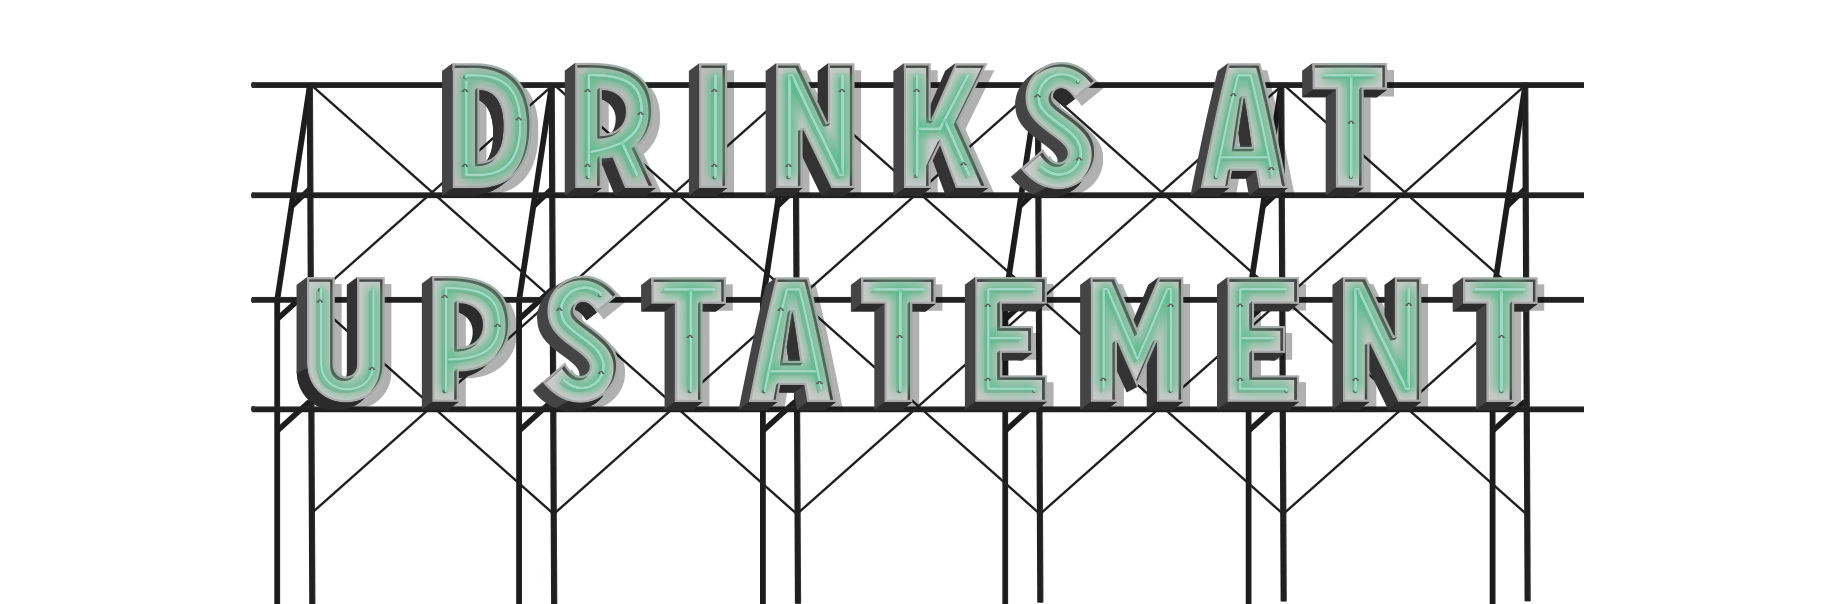 drinks sign neon